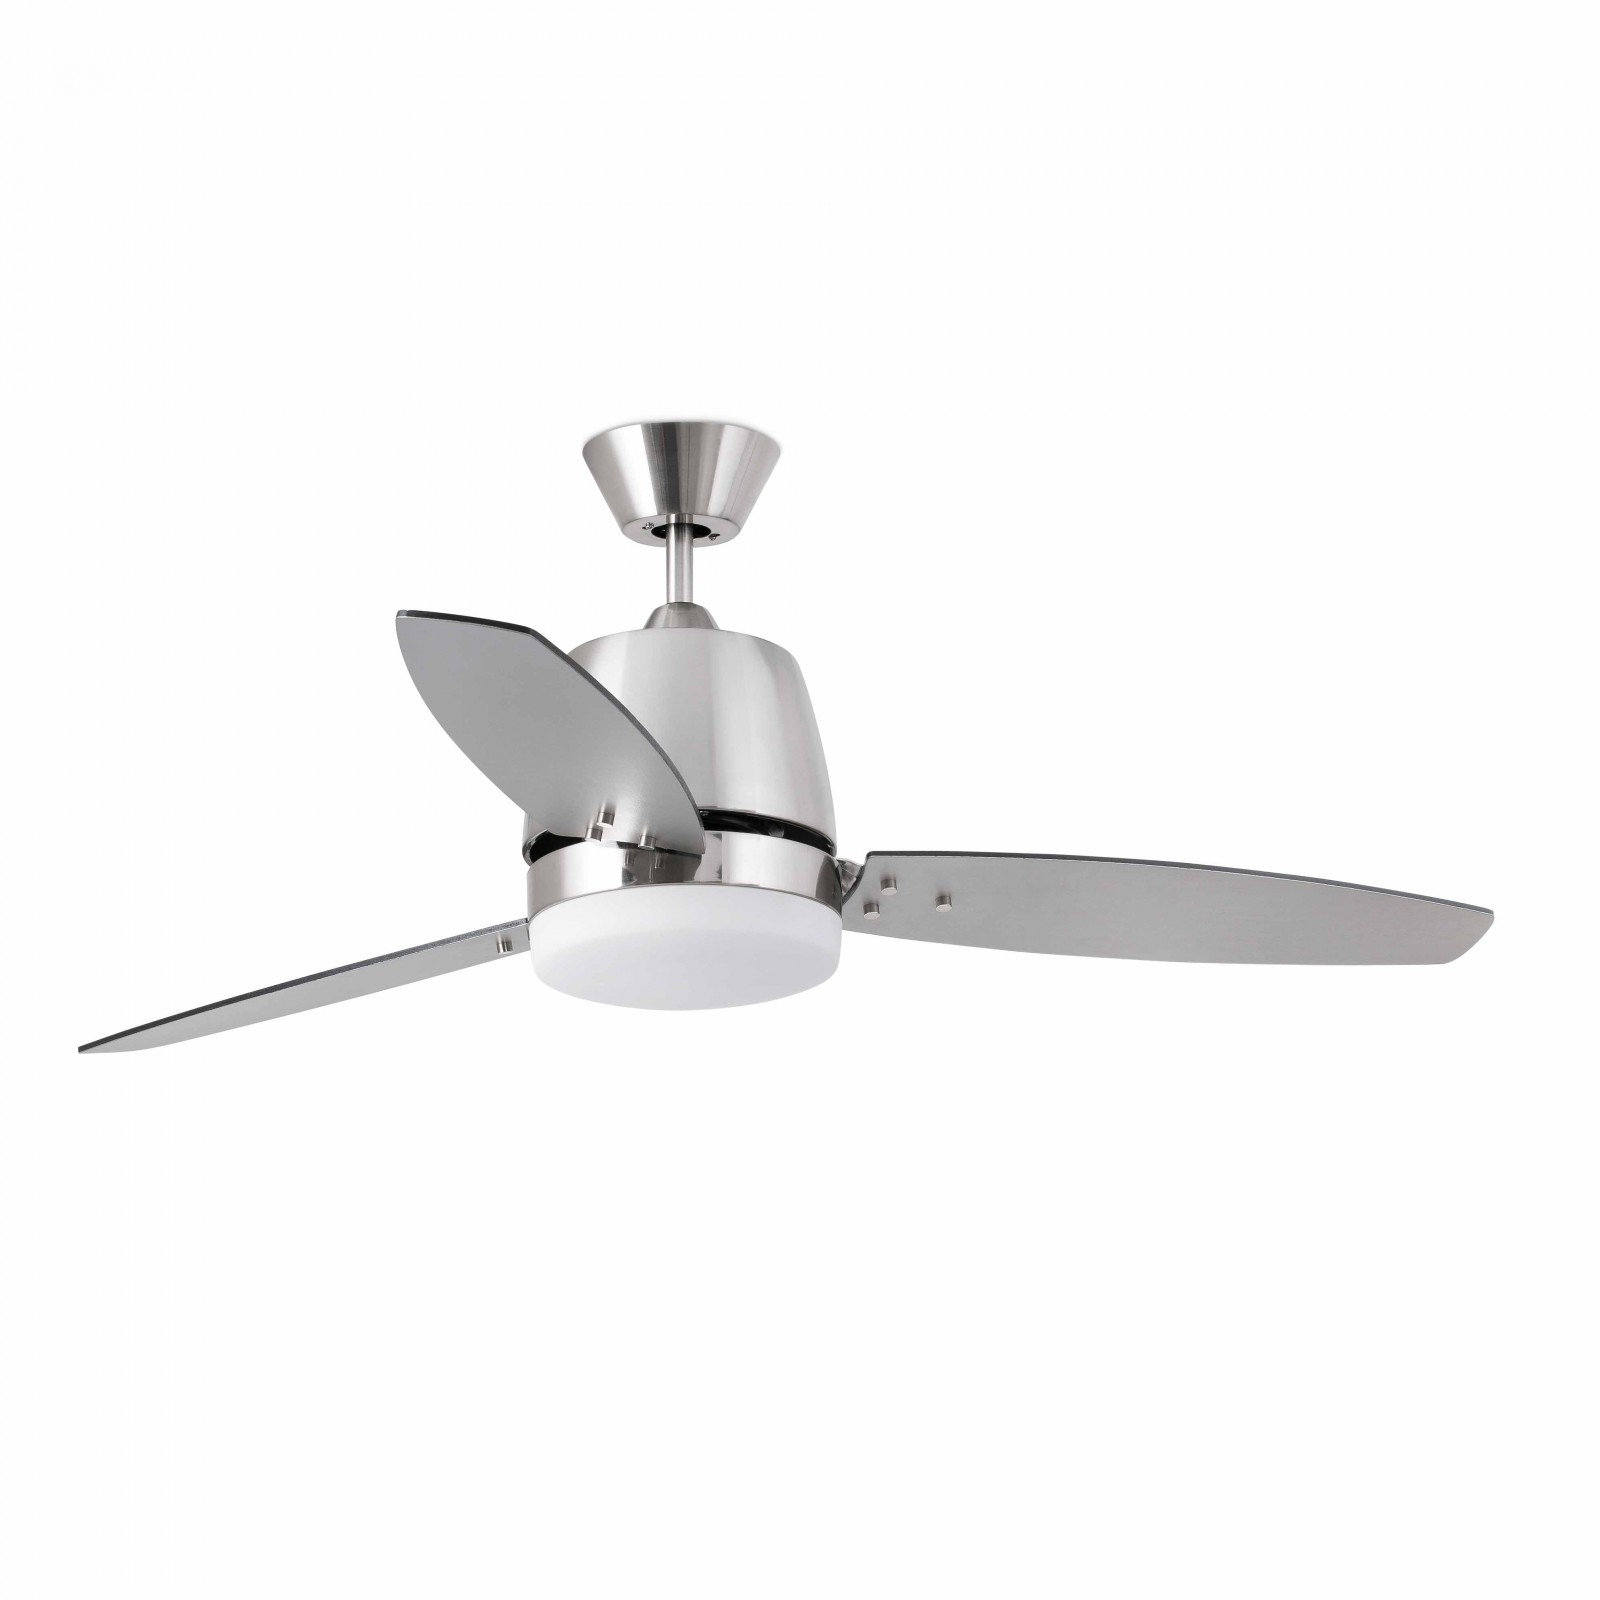 "Faro ceiling fan Malta Nickel matt 132 cm 52"" with light and"